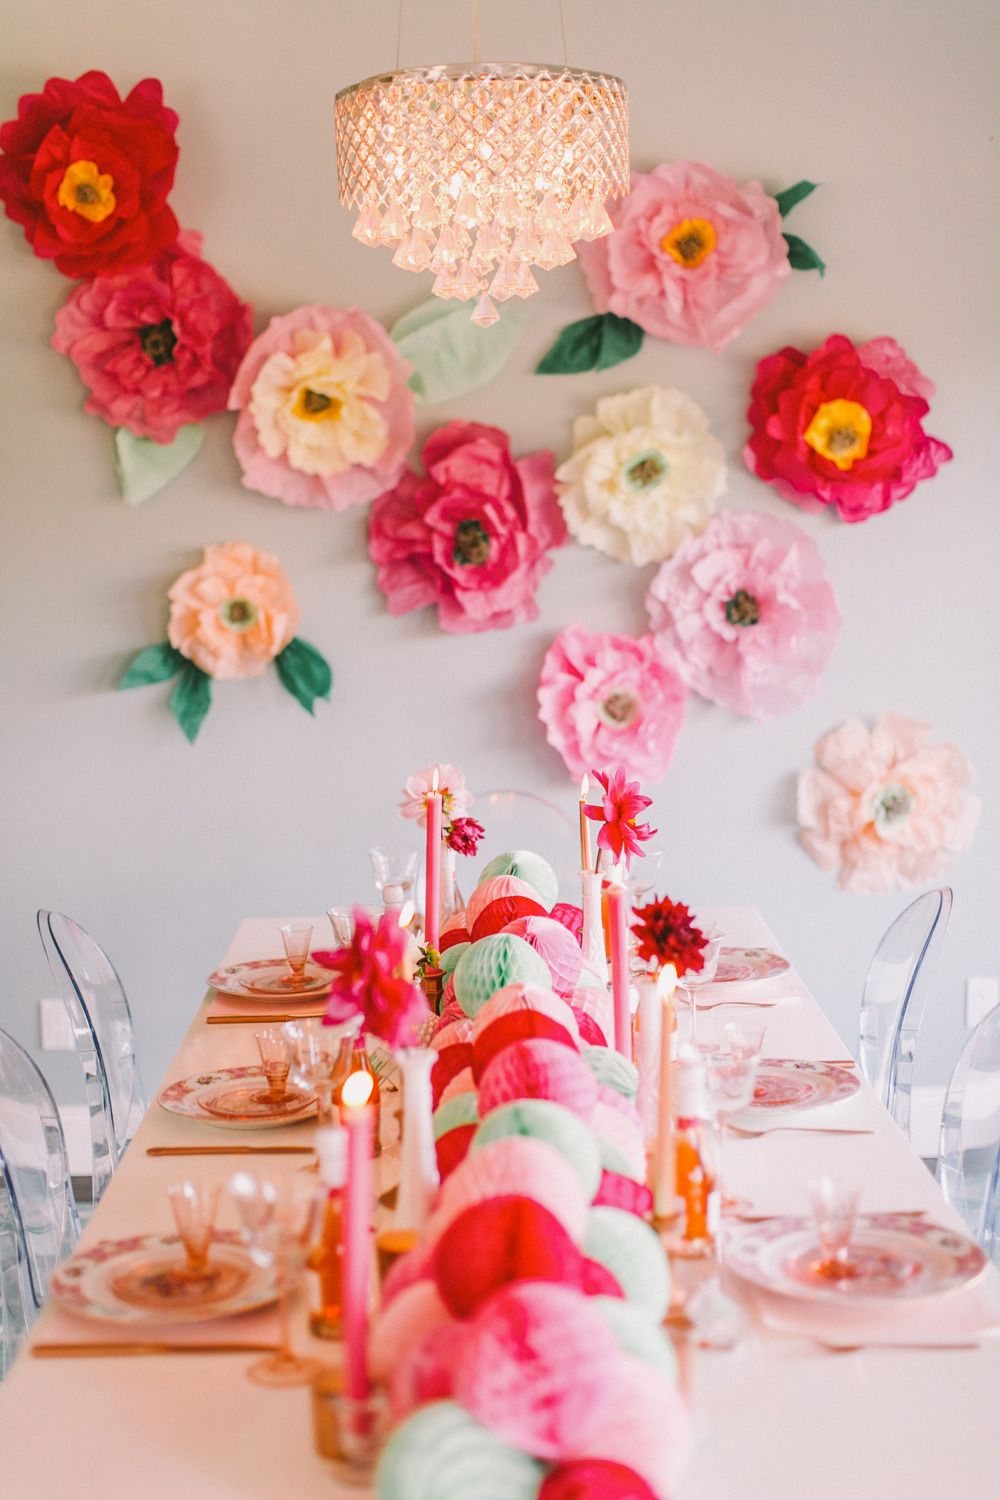 15 of our favorite wedding diys flower wall party photography 15 of our favorite wedding diys paper flower walltissue dhlflorist Images